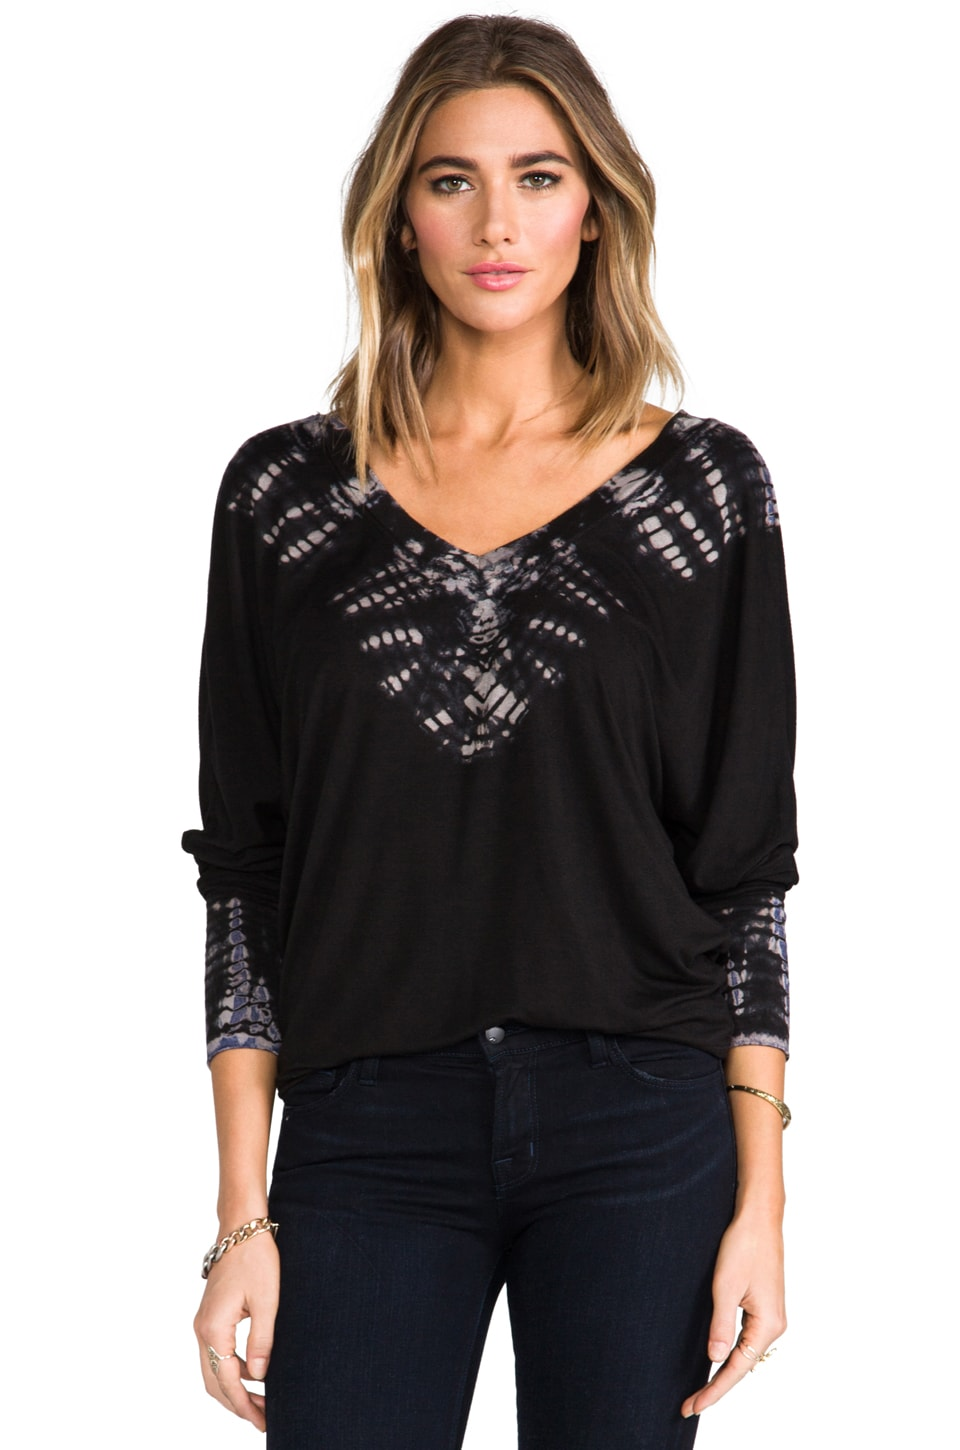 Gypsy 05 Oversized V Neck in Black